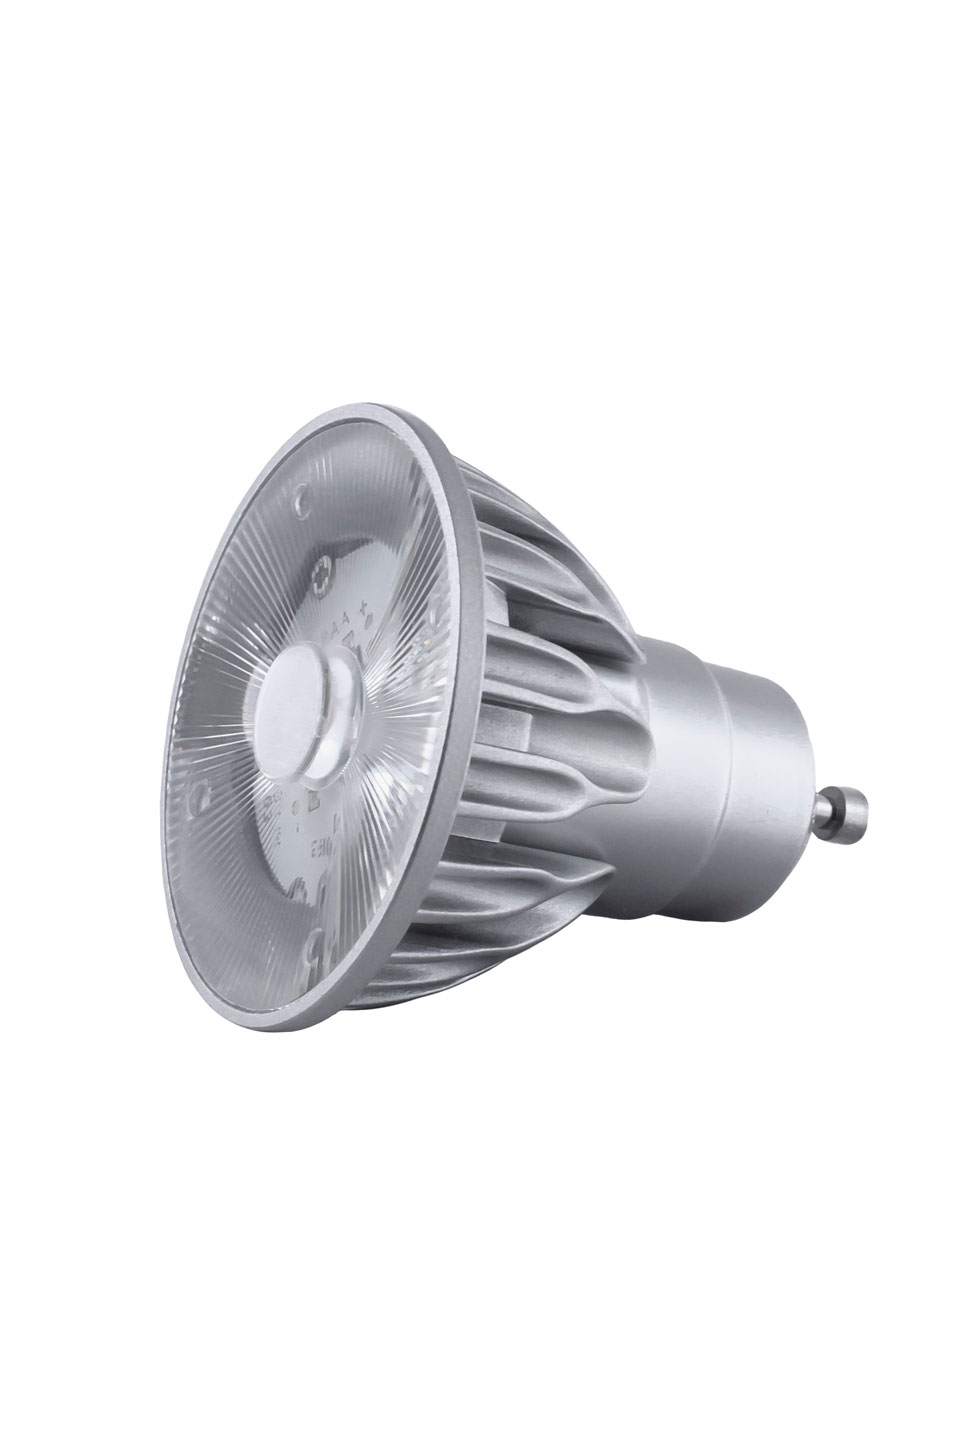 GU10 LED spot light bulb, 10 °, 2700 K. SORAA.